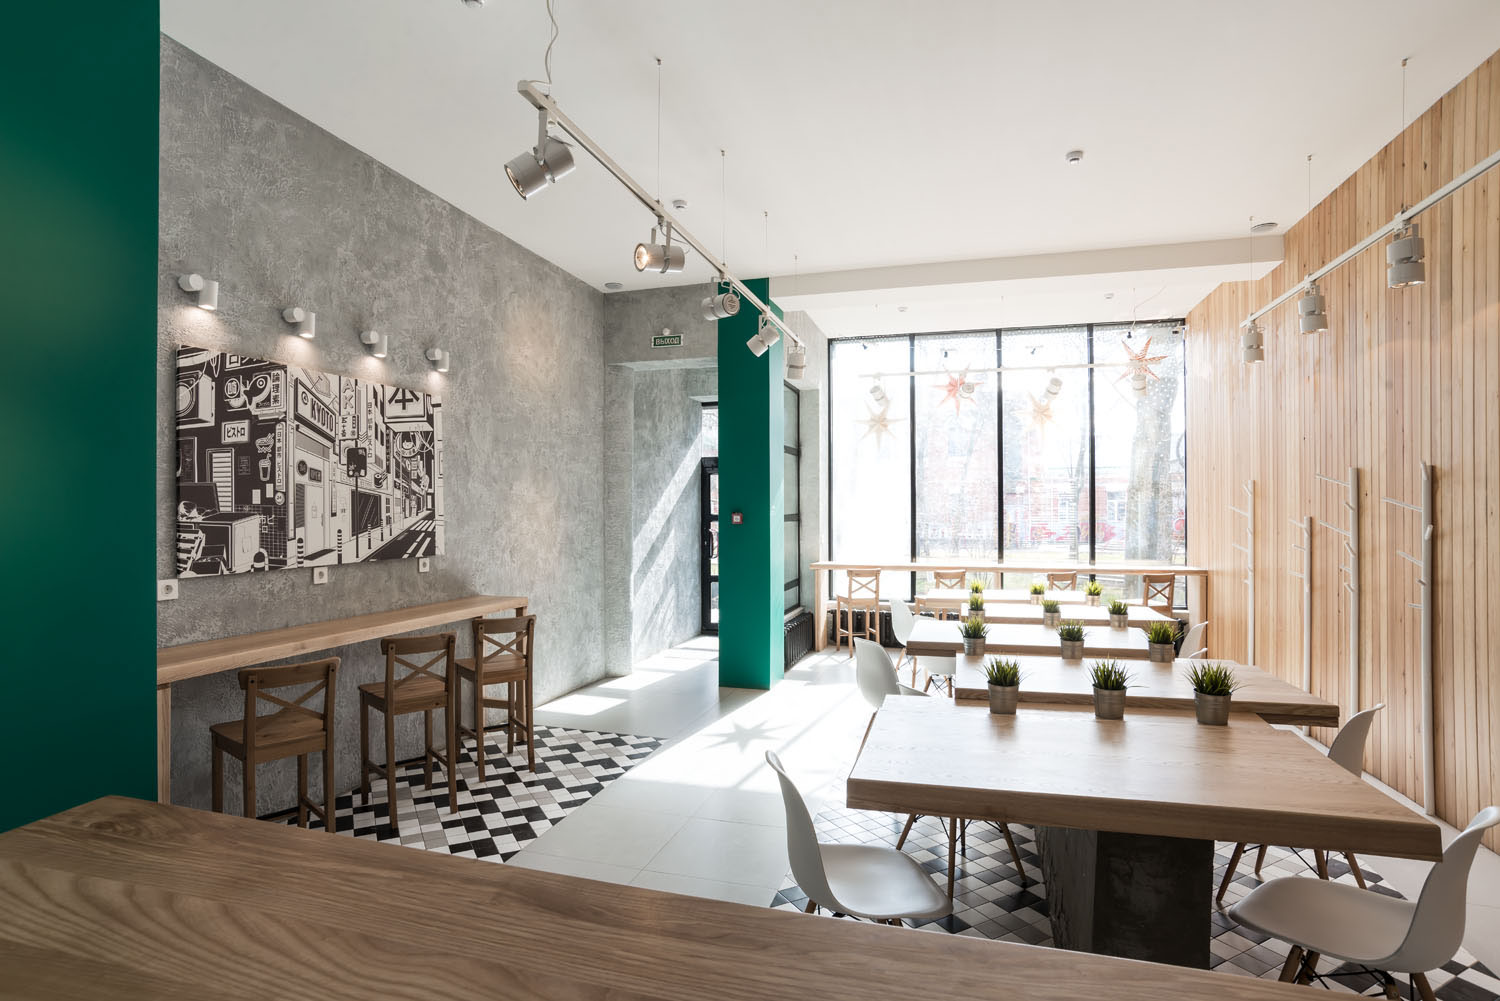 wok-cafe - interior design & branding